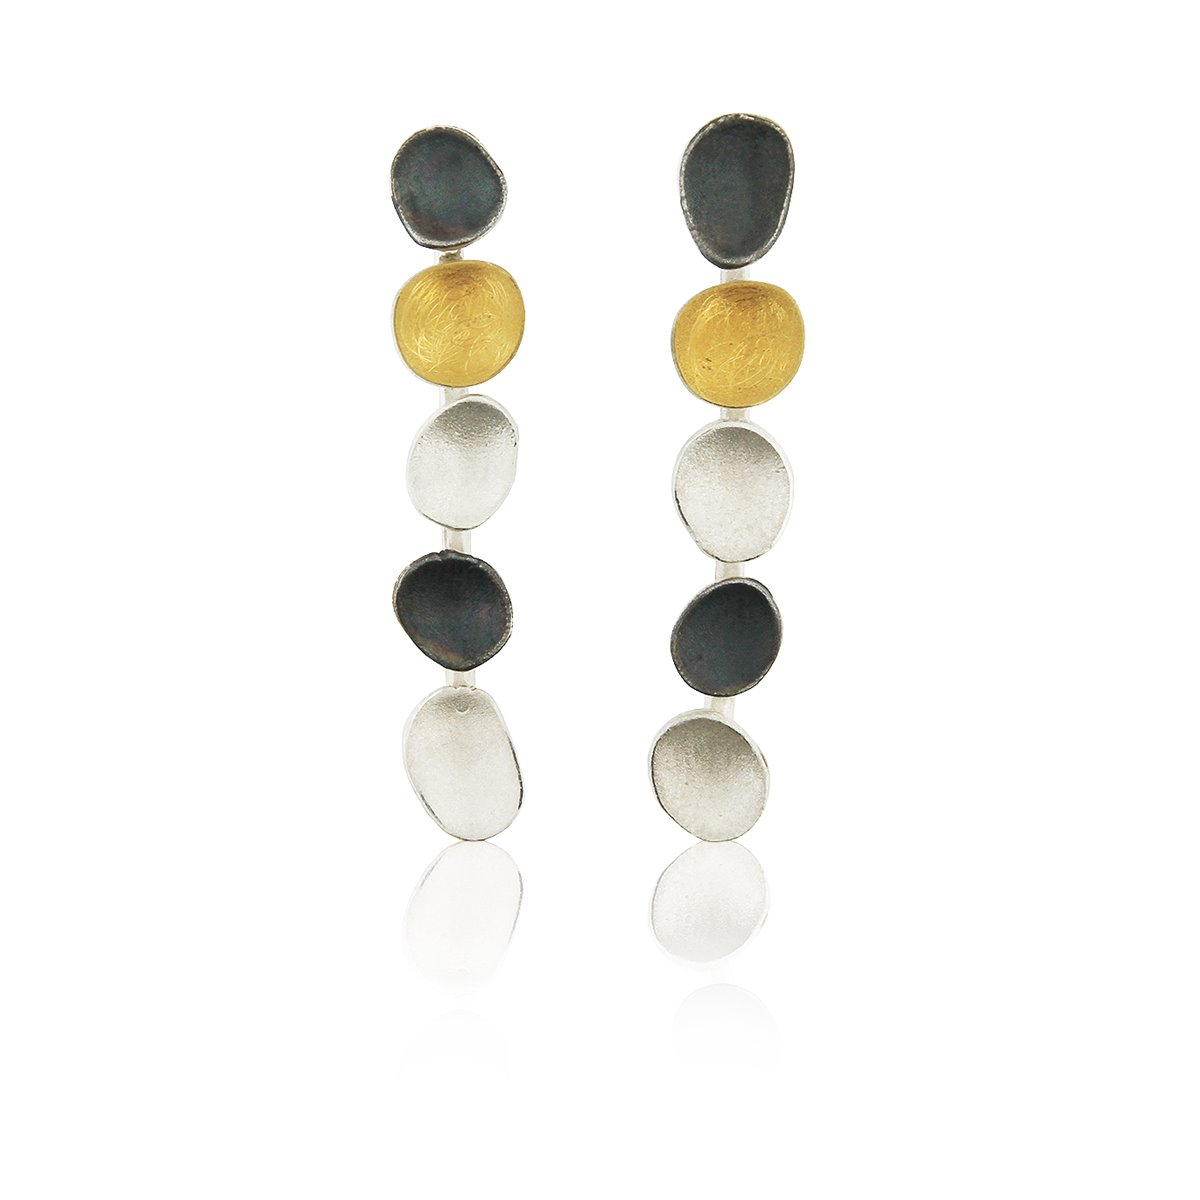 SILVER & GOLD EARRINGS. E1516L